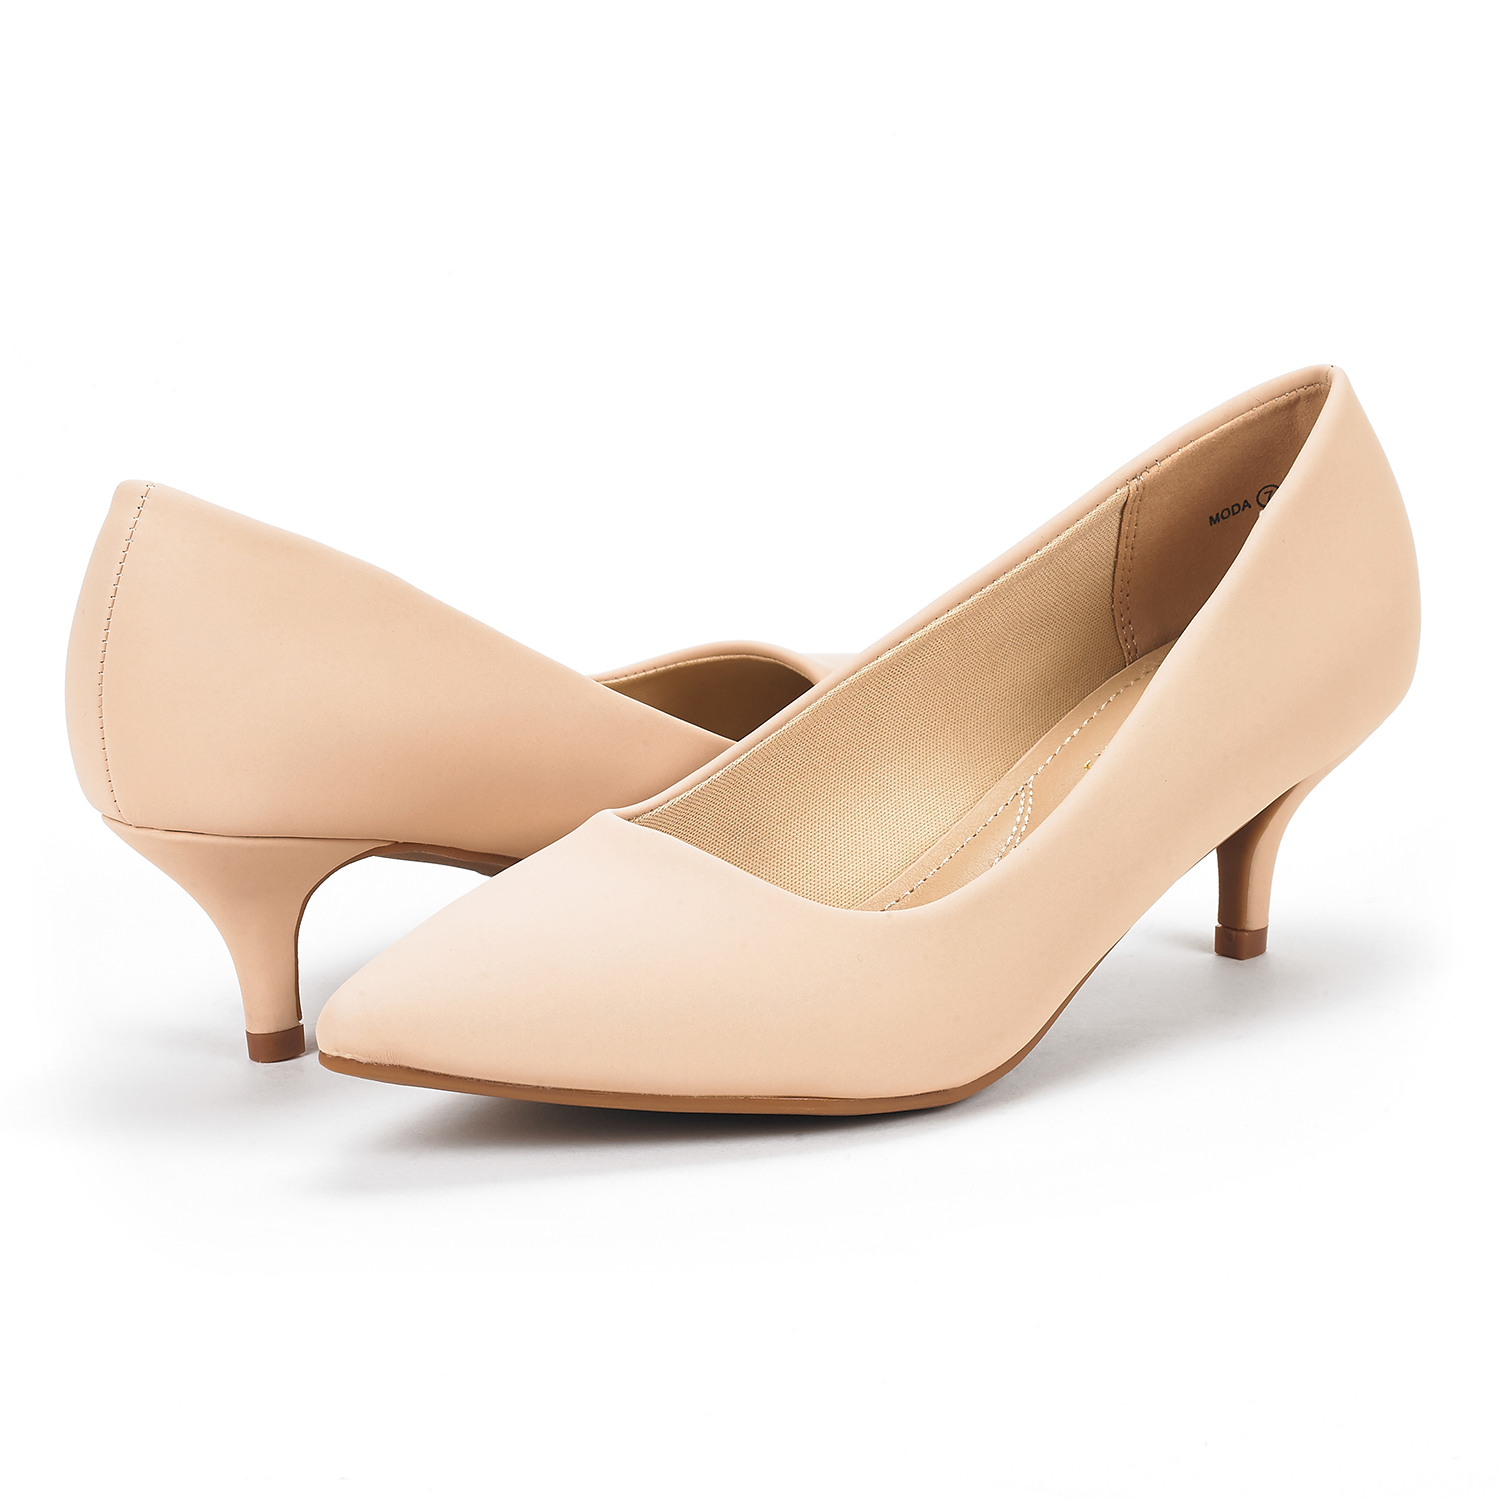 c42d463140d9a Details about DREAM PAIRS Womens MODA Low Heel D'Orsay Pointed Toe Dress  Pump Wedding Shoes